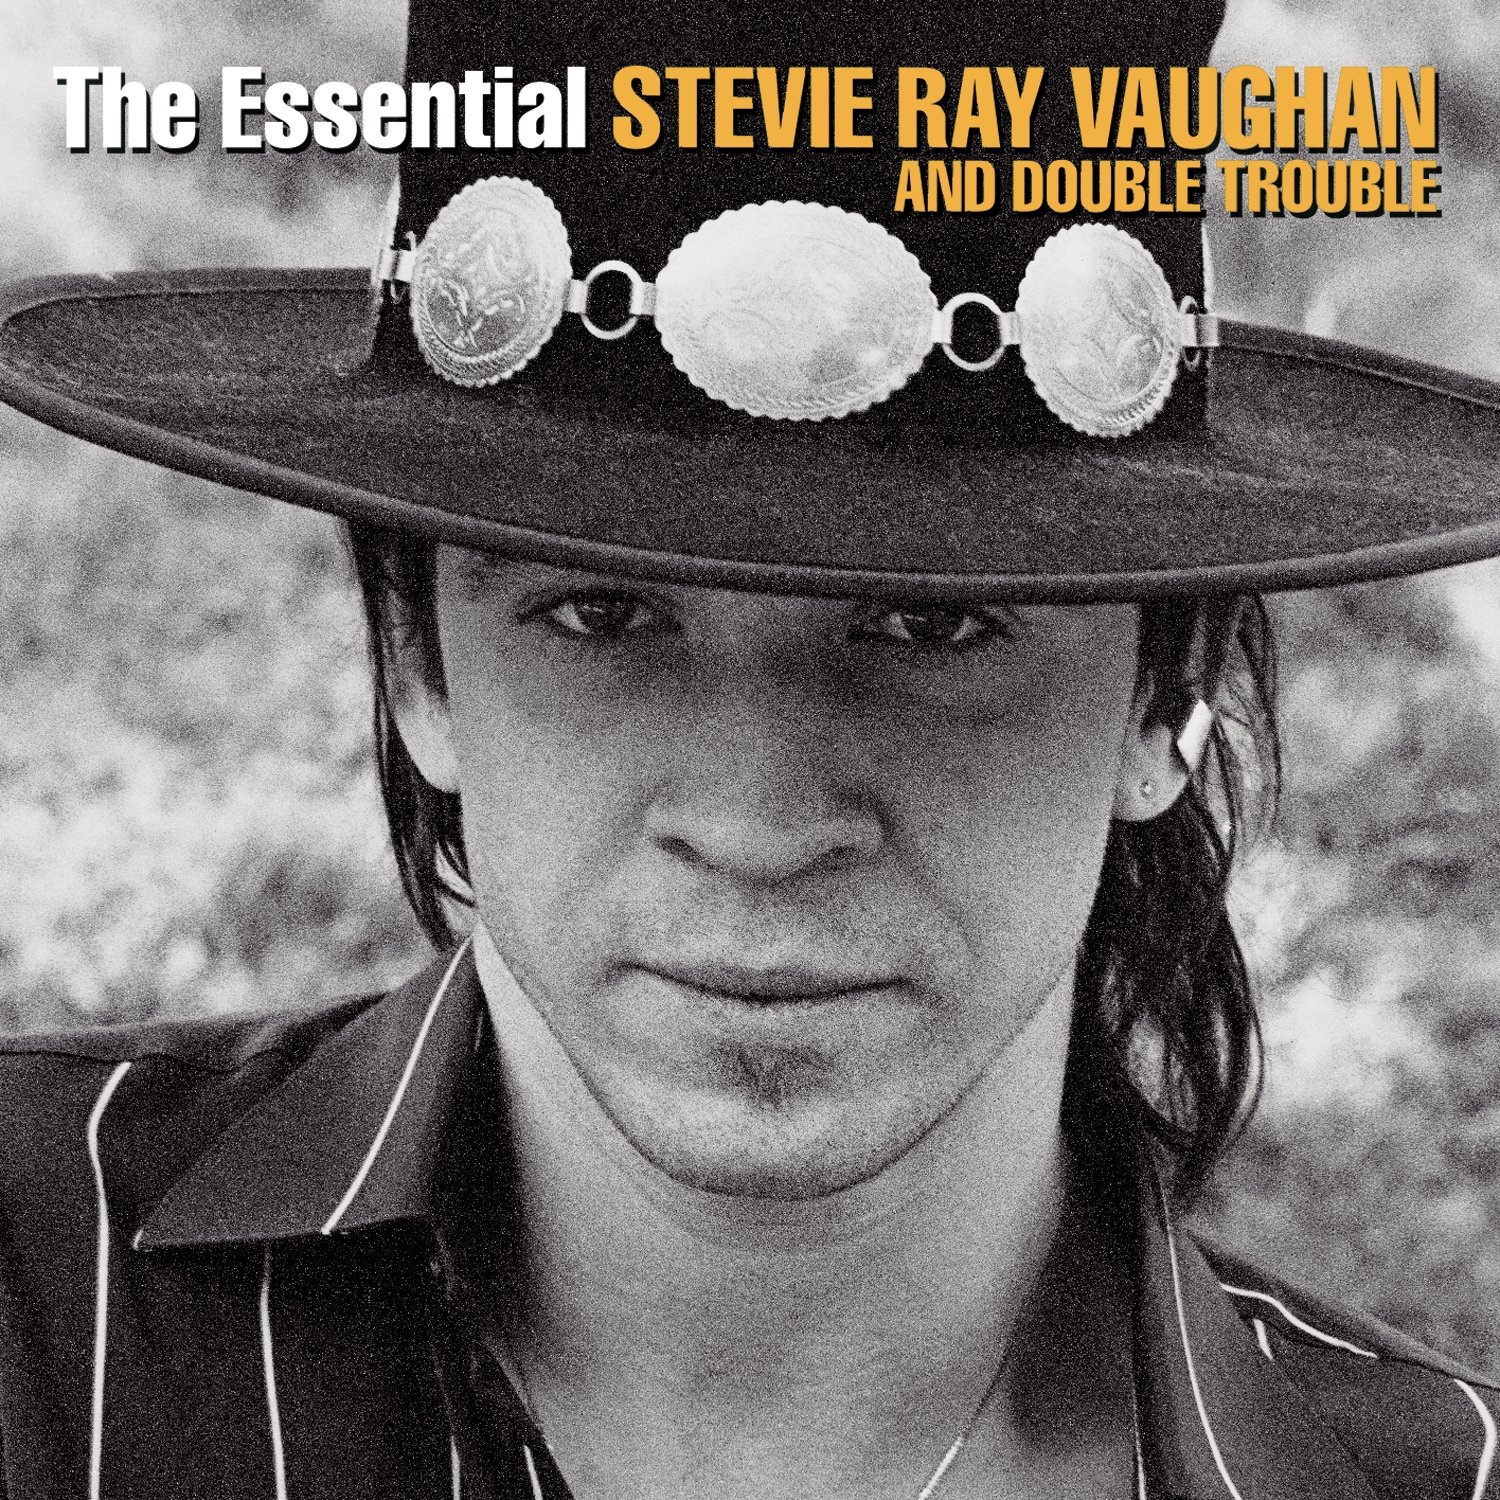 The Essential Stevie Ray Vaughan and Double Trouble by Legacy